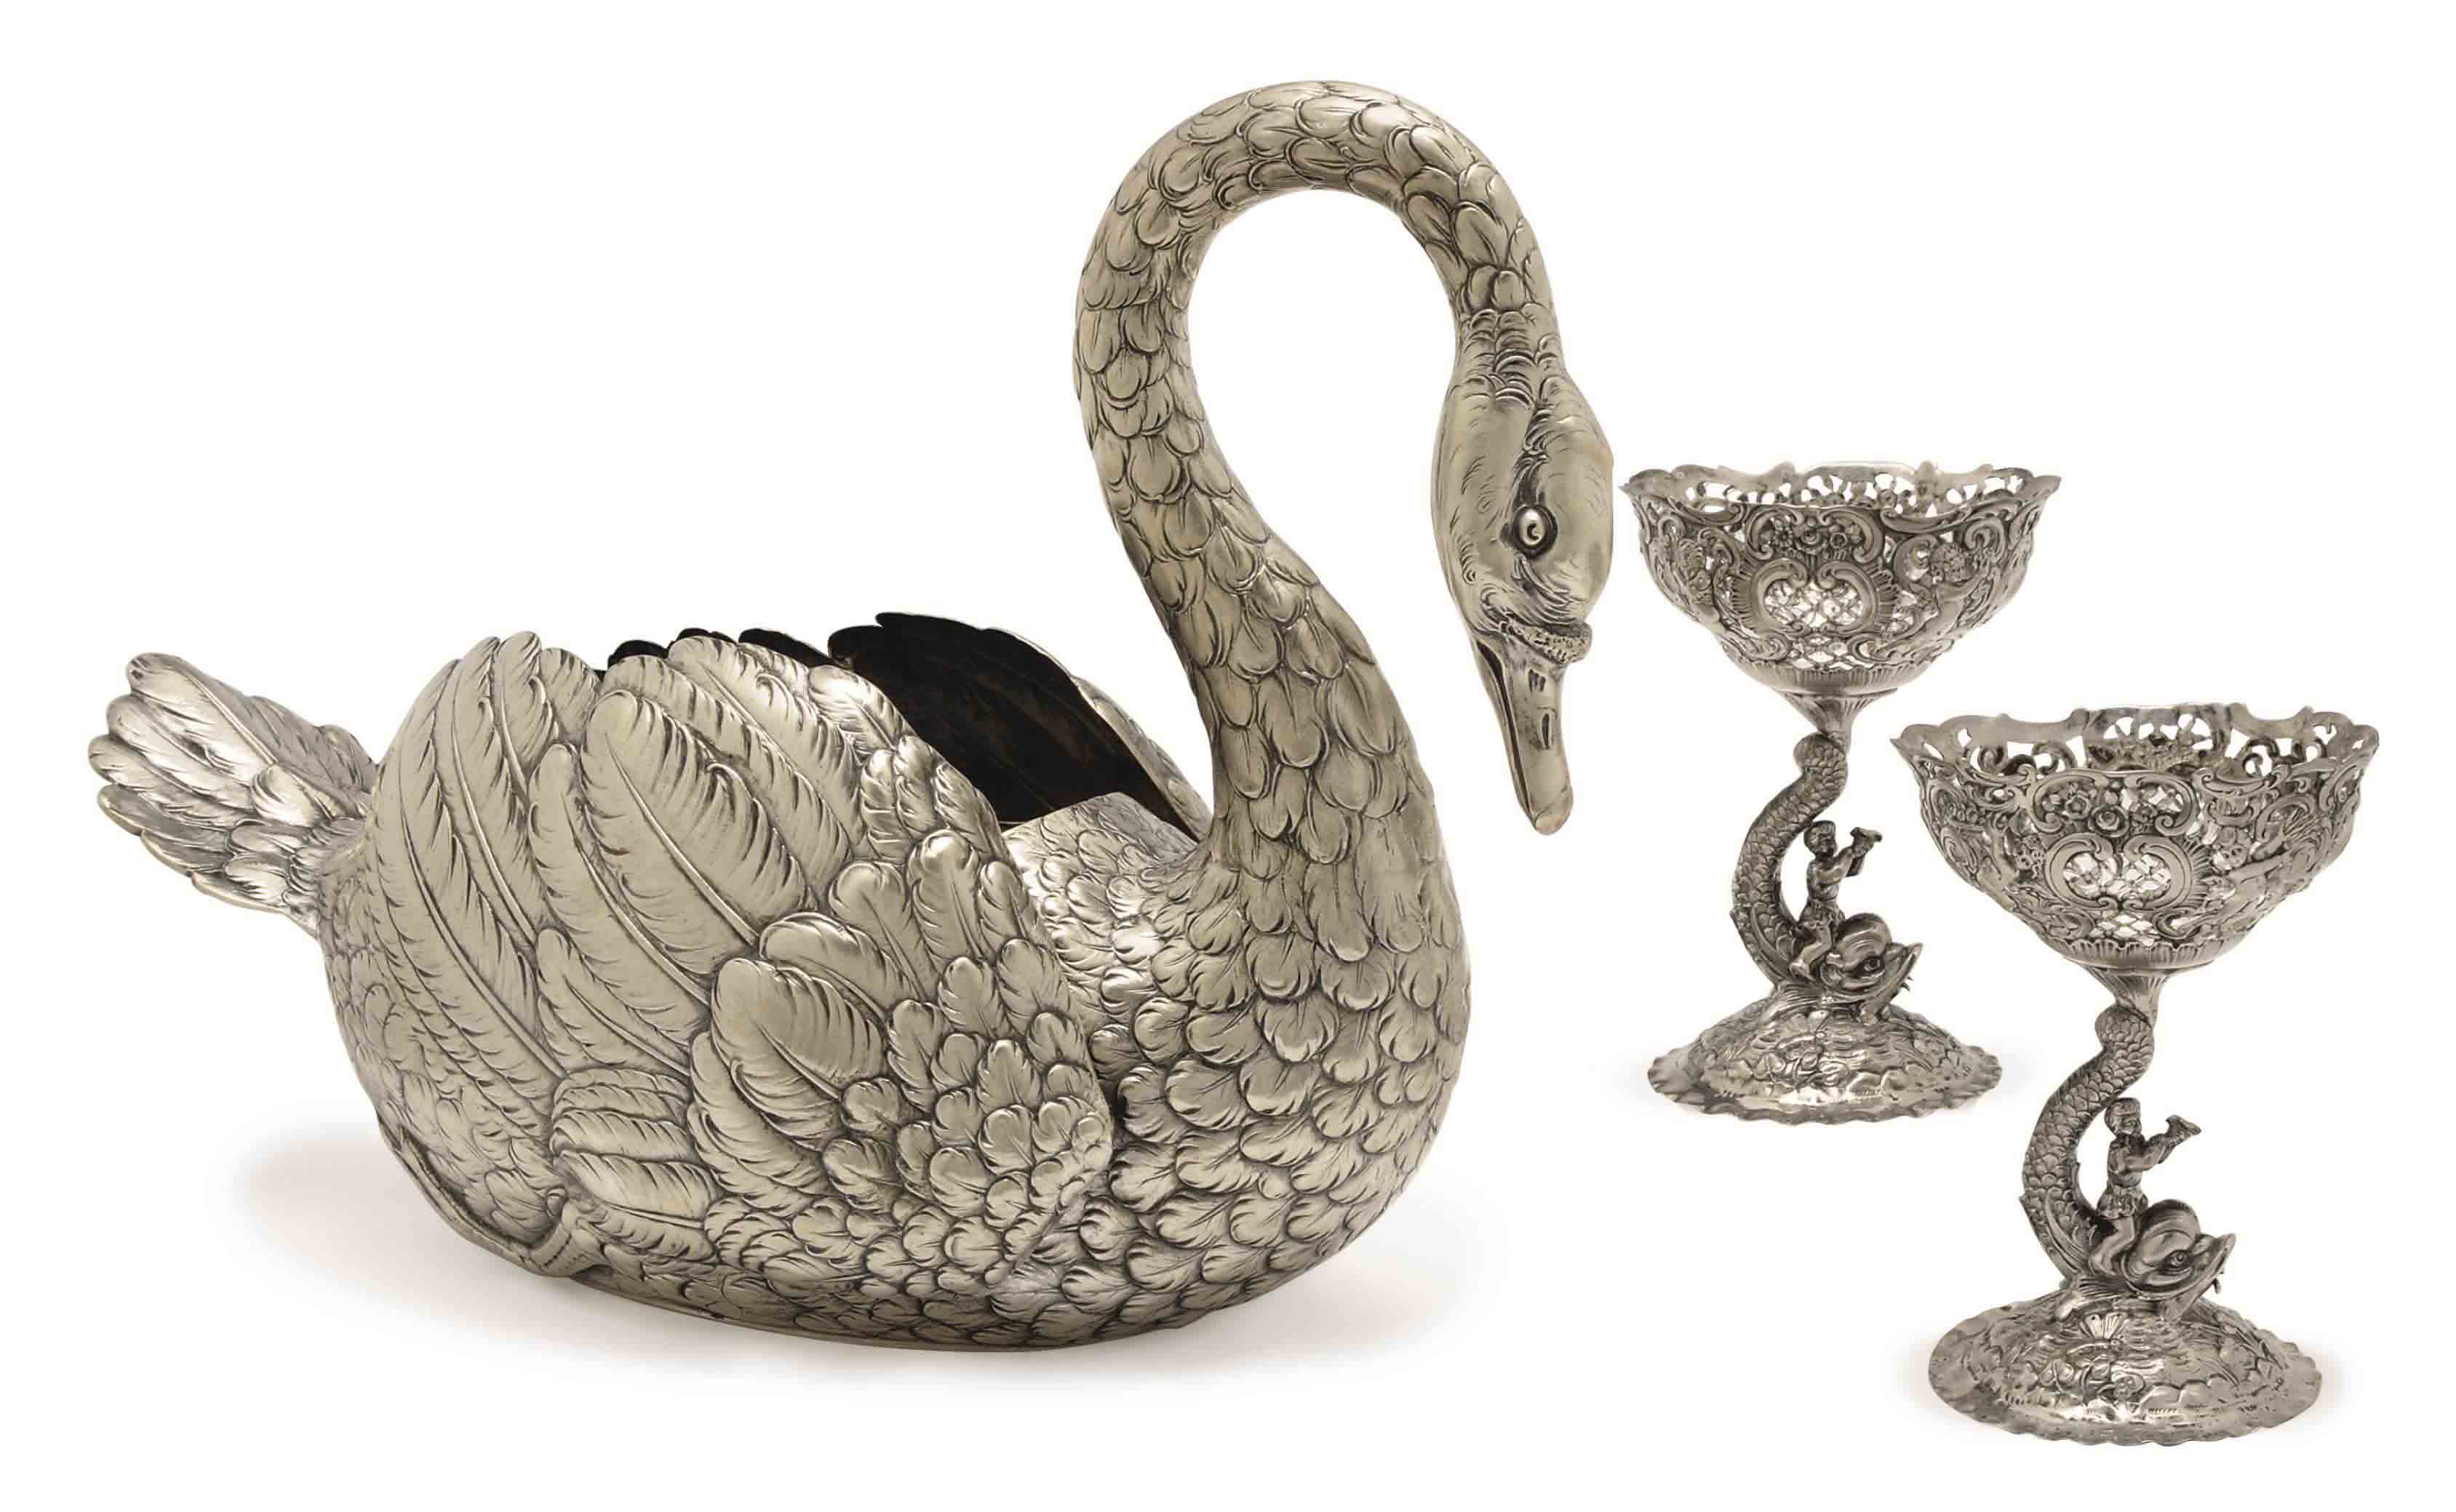 A GERMAN SILVER SWAN-FORM JARDINIERE AND TWO RETICULATED FOOTED DISHES,